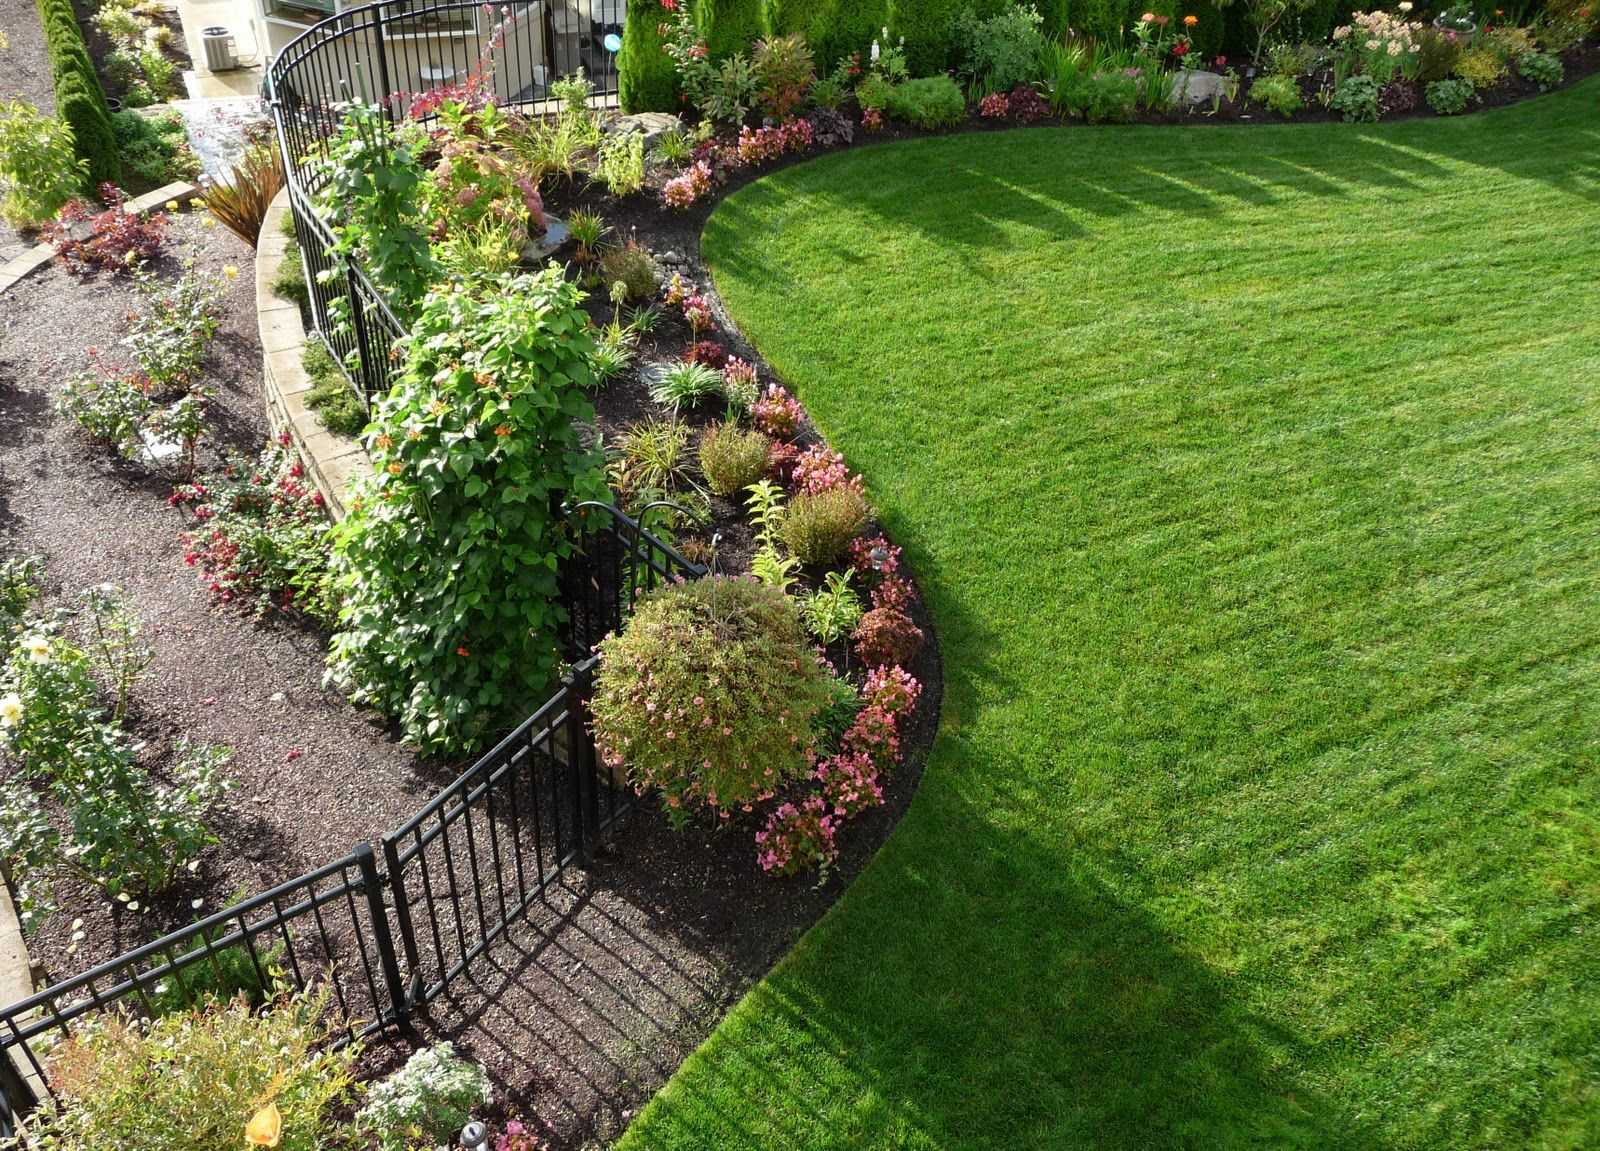 Lawn And Garden Supply : Landscape products photo gallery mark s lawn garden